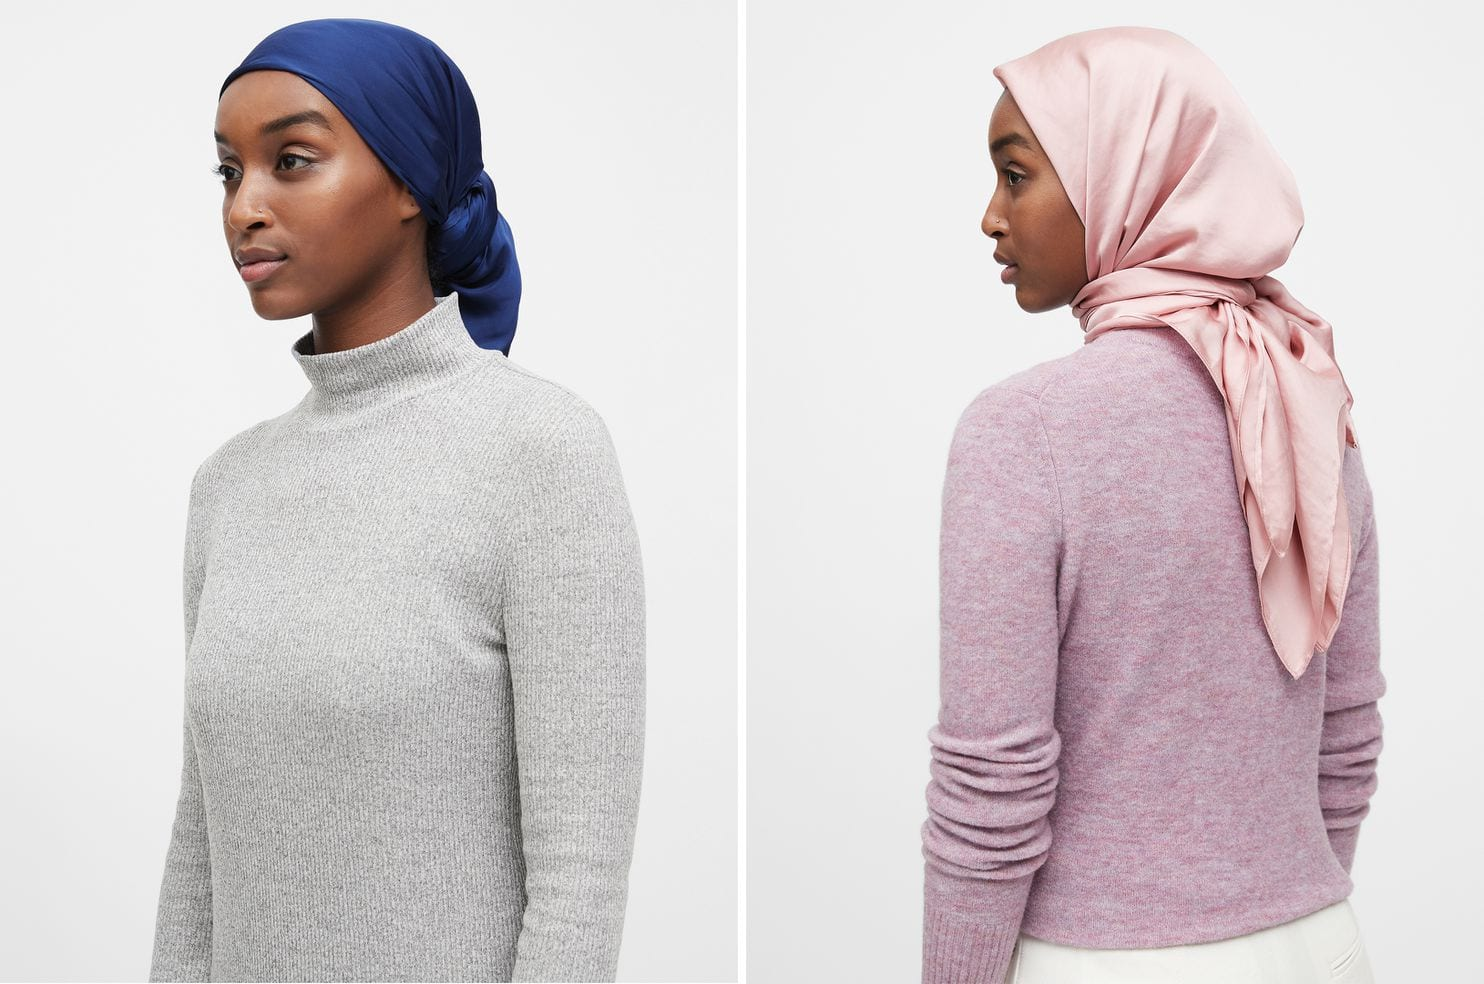 Banana Republic is selling hijabs. Muslim shoppers wonder: Is it inclusion or appropriation?